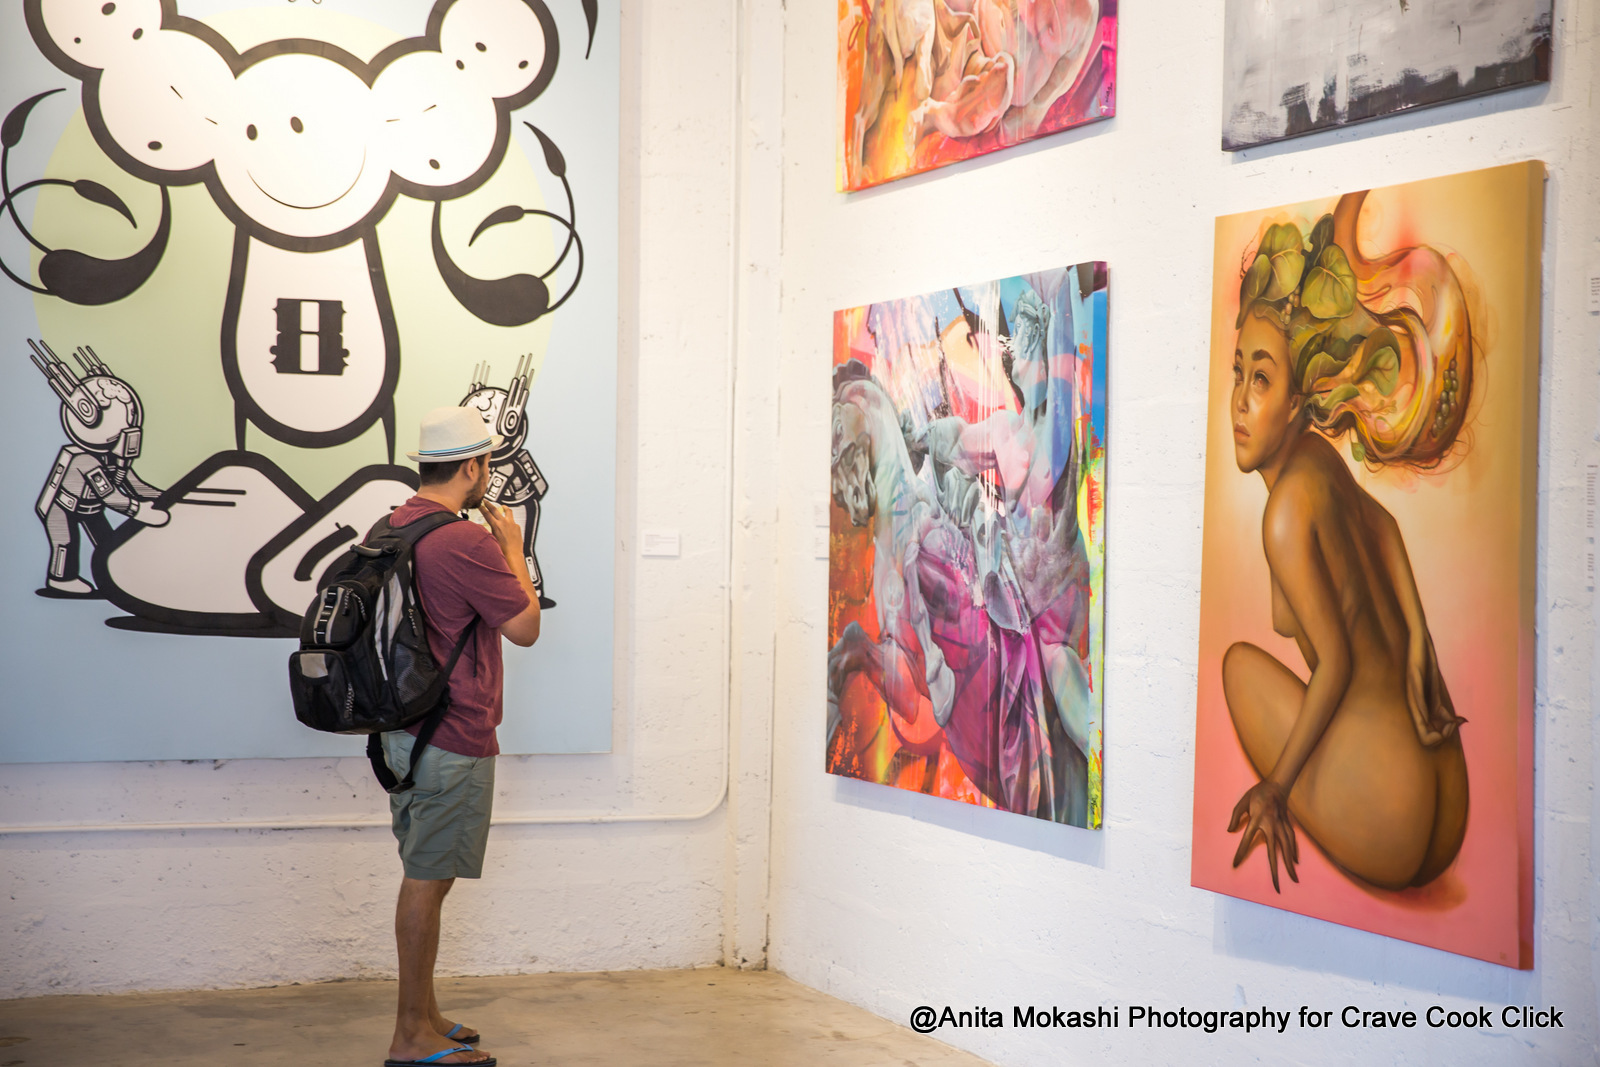 miamiblog, travelblog, miamipictures, things to do in miami, ocean drive, south beach, street photography, wynwood walls, lummus park, florida